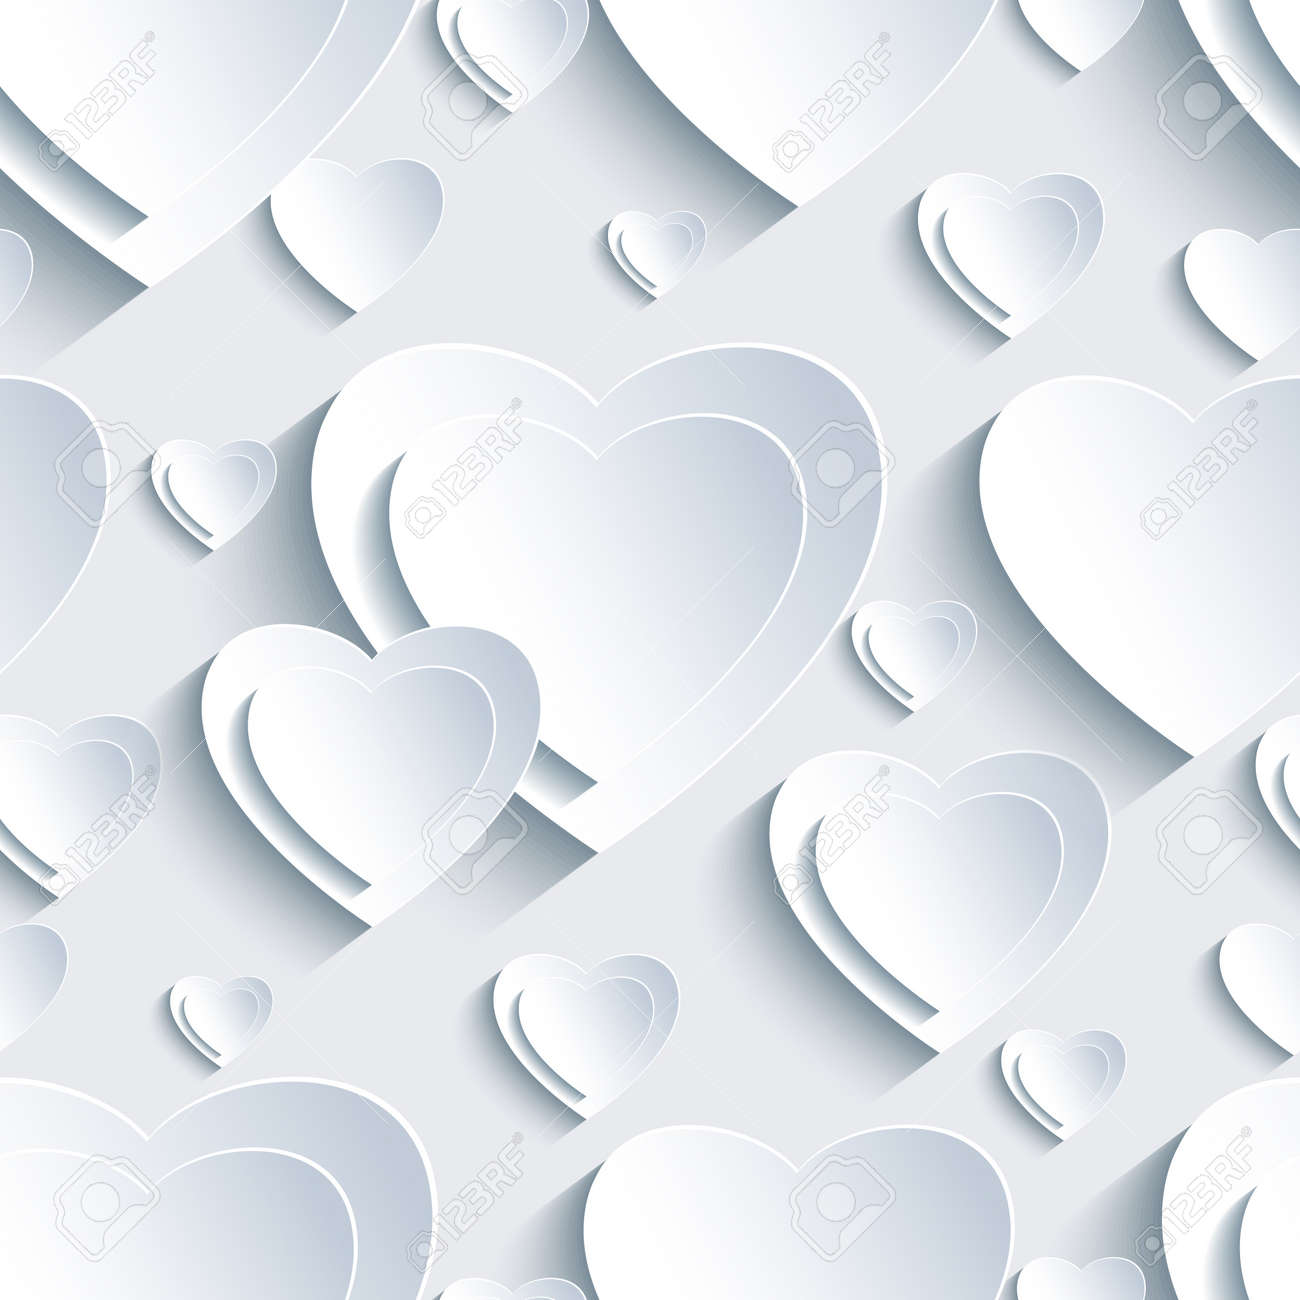 Stylish Grey Background Seamless Pattern With White 3d Paper Hearts For Day  Valentine. Beautiful Abstract